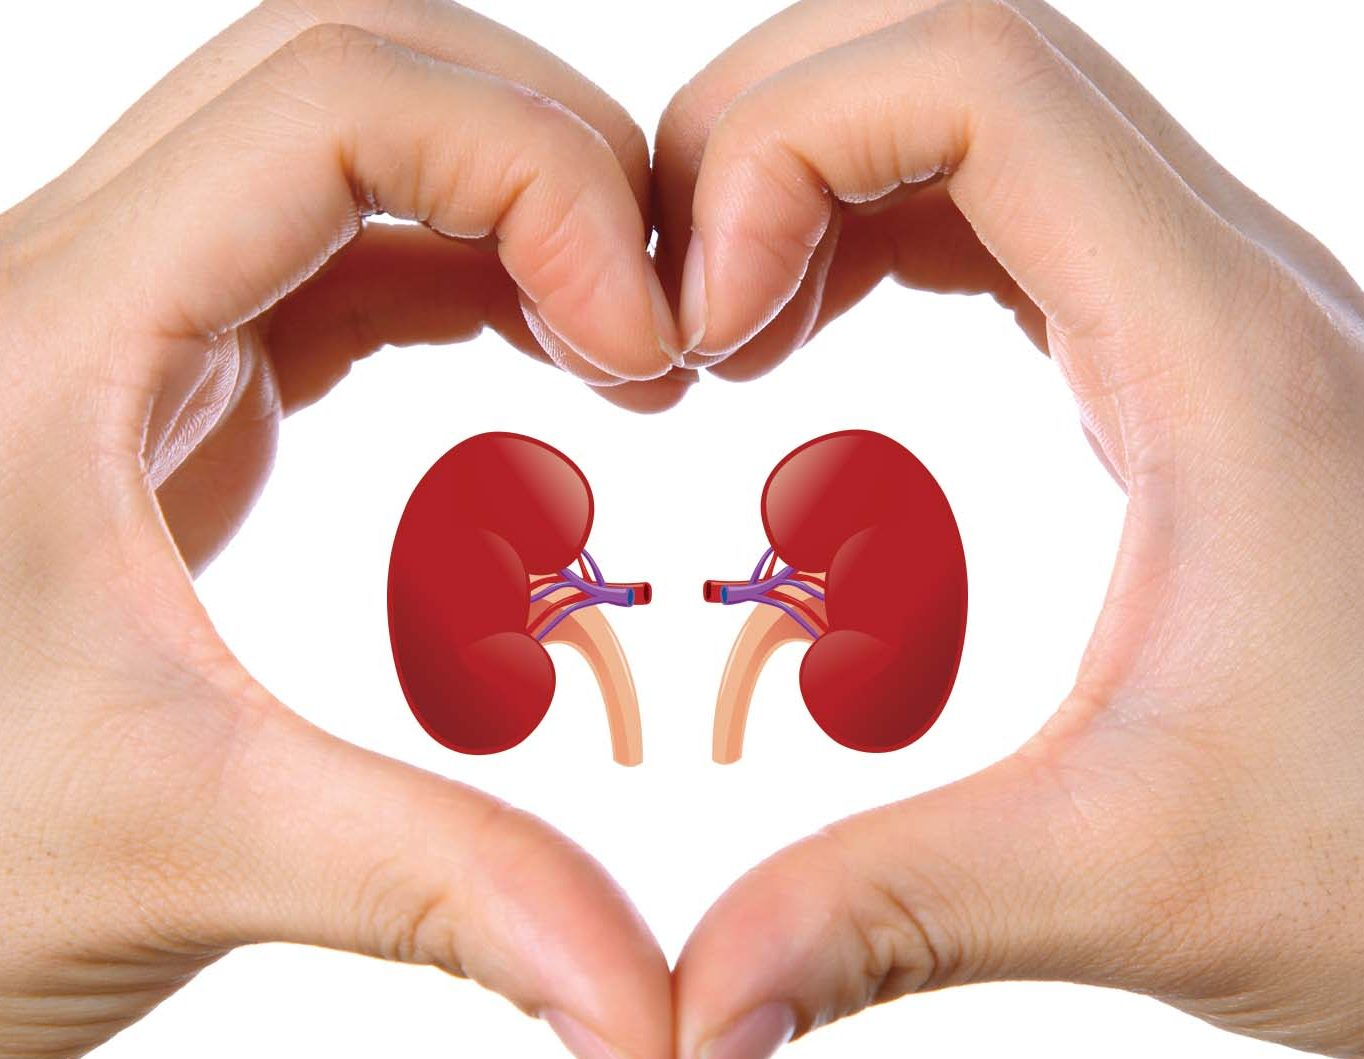 HAVE CHRONIC KIDNEY DISEASE YOU CAN BE AT HIGHER RISK OF DEVELOPING CANCER SAYS A STUDY